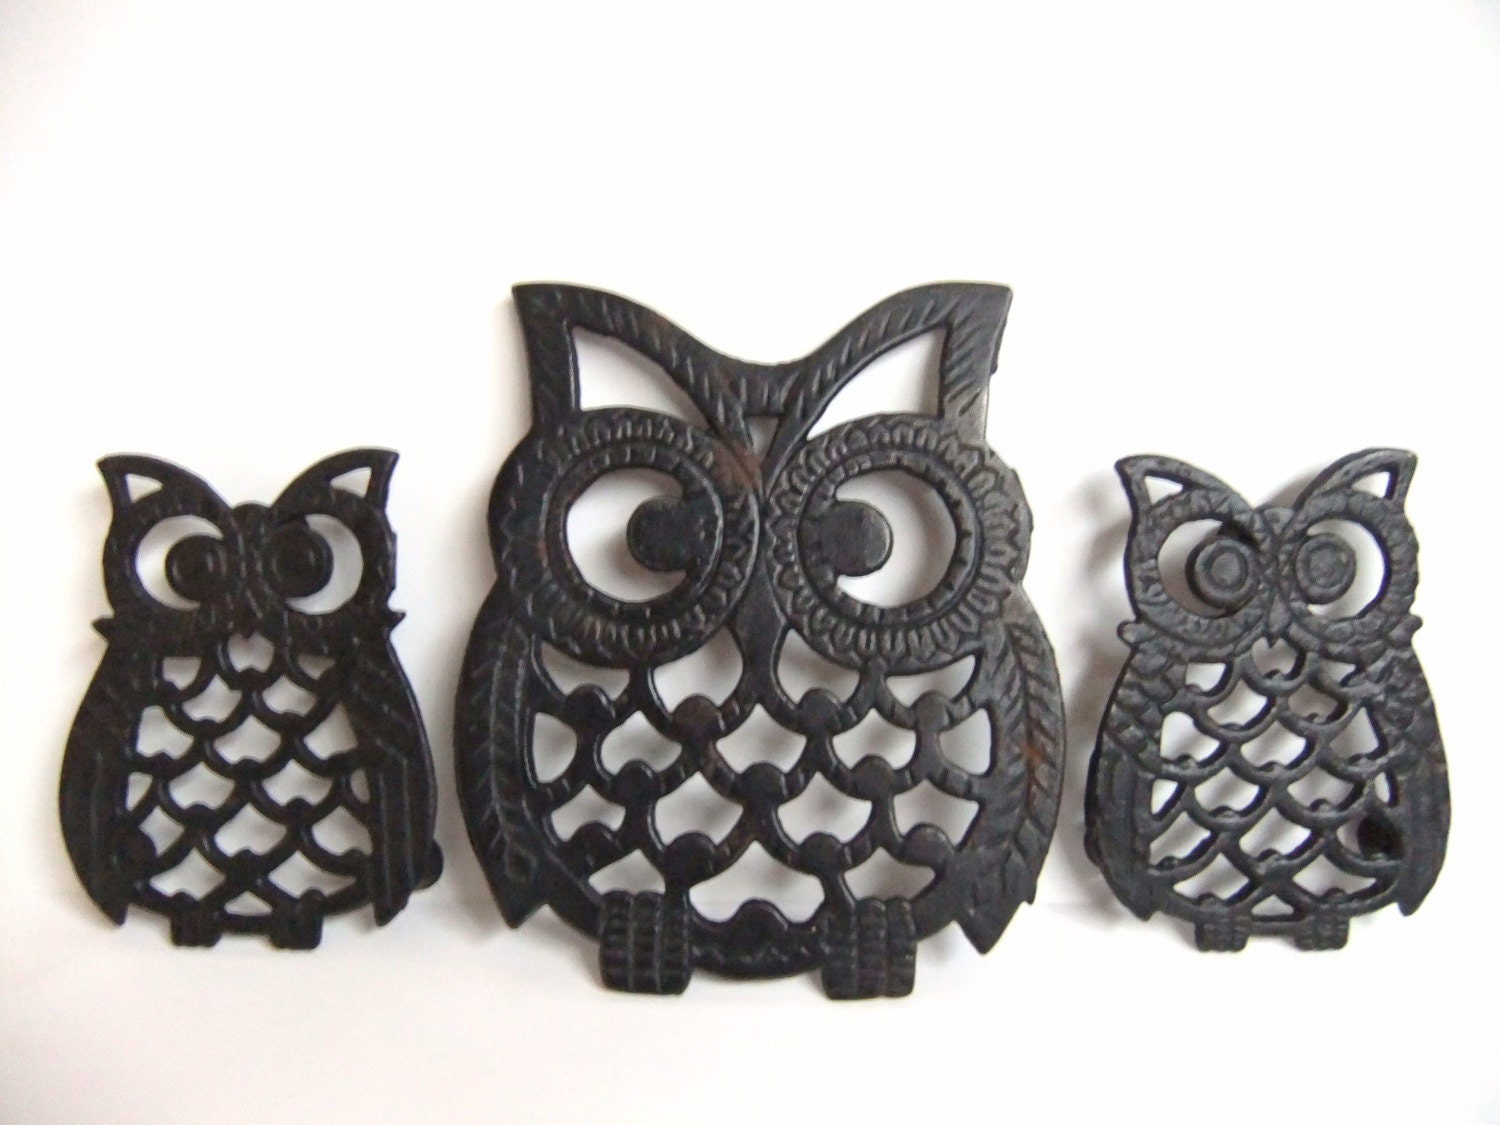 Black Owl Trivets Owl Wall Decor Hanging Owl Home